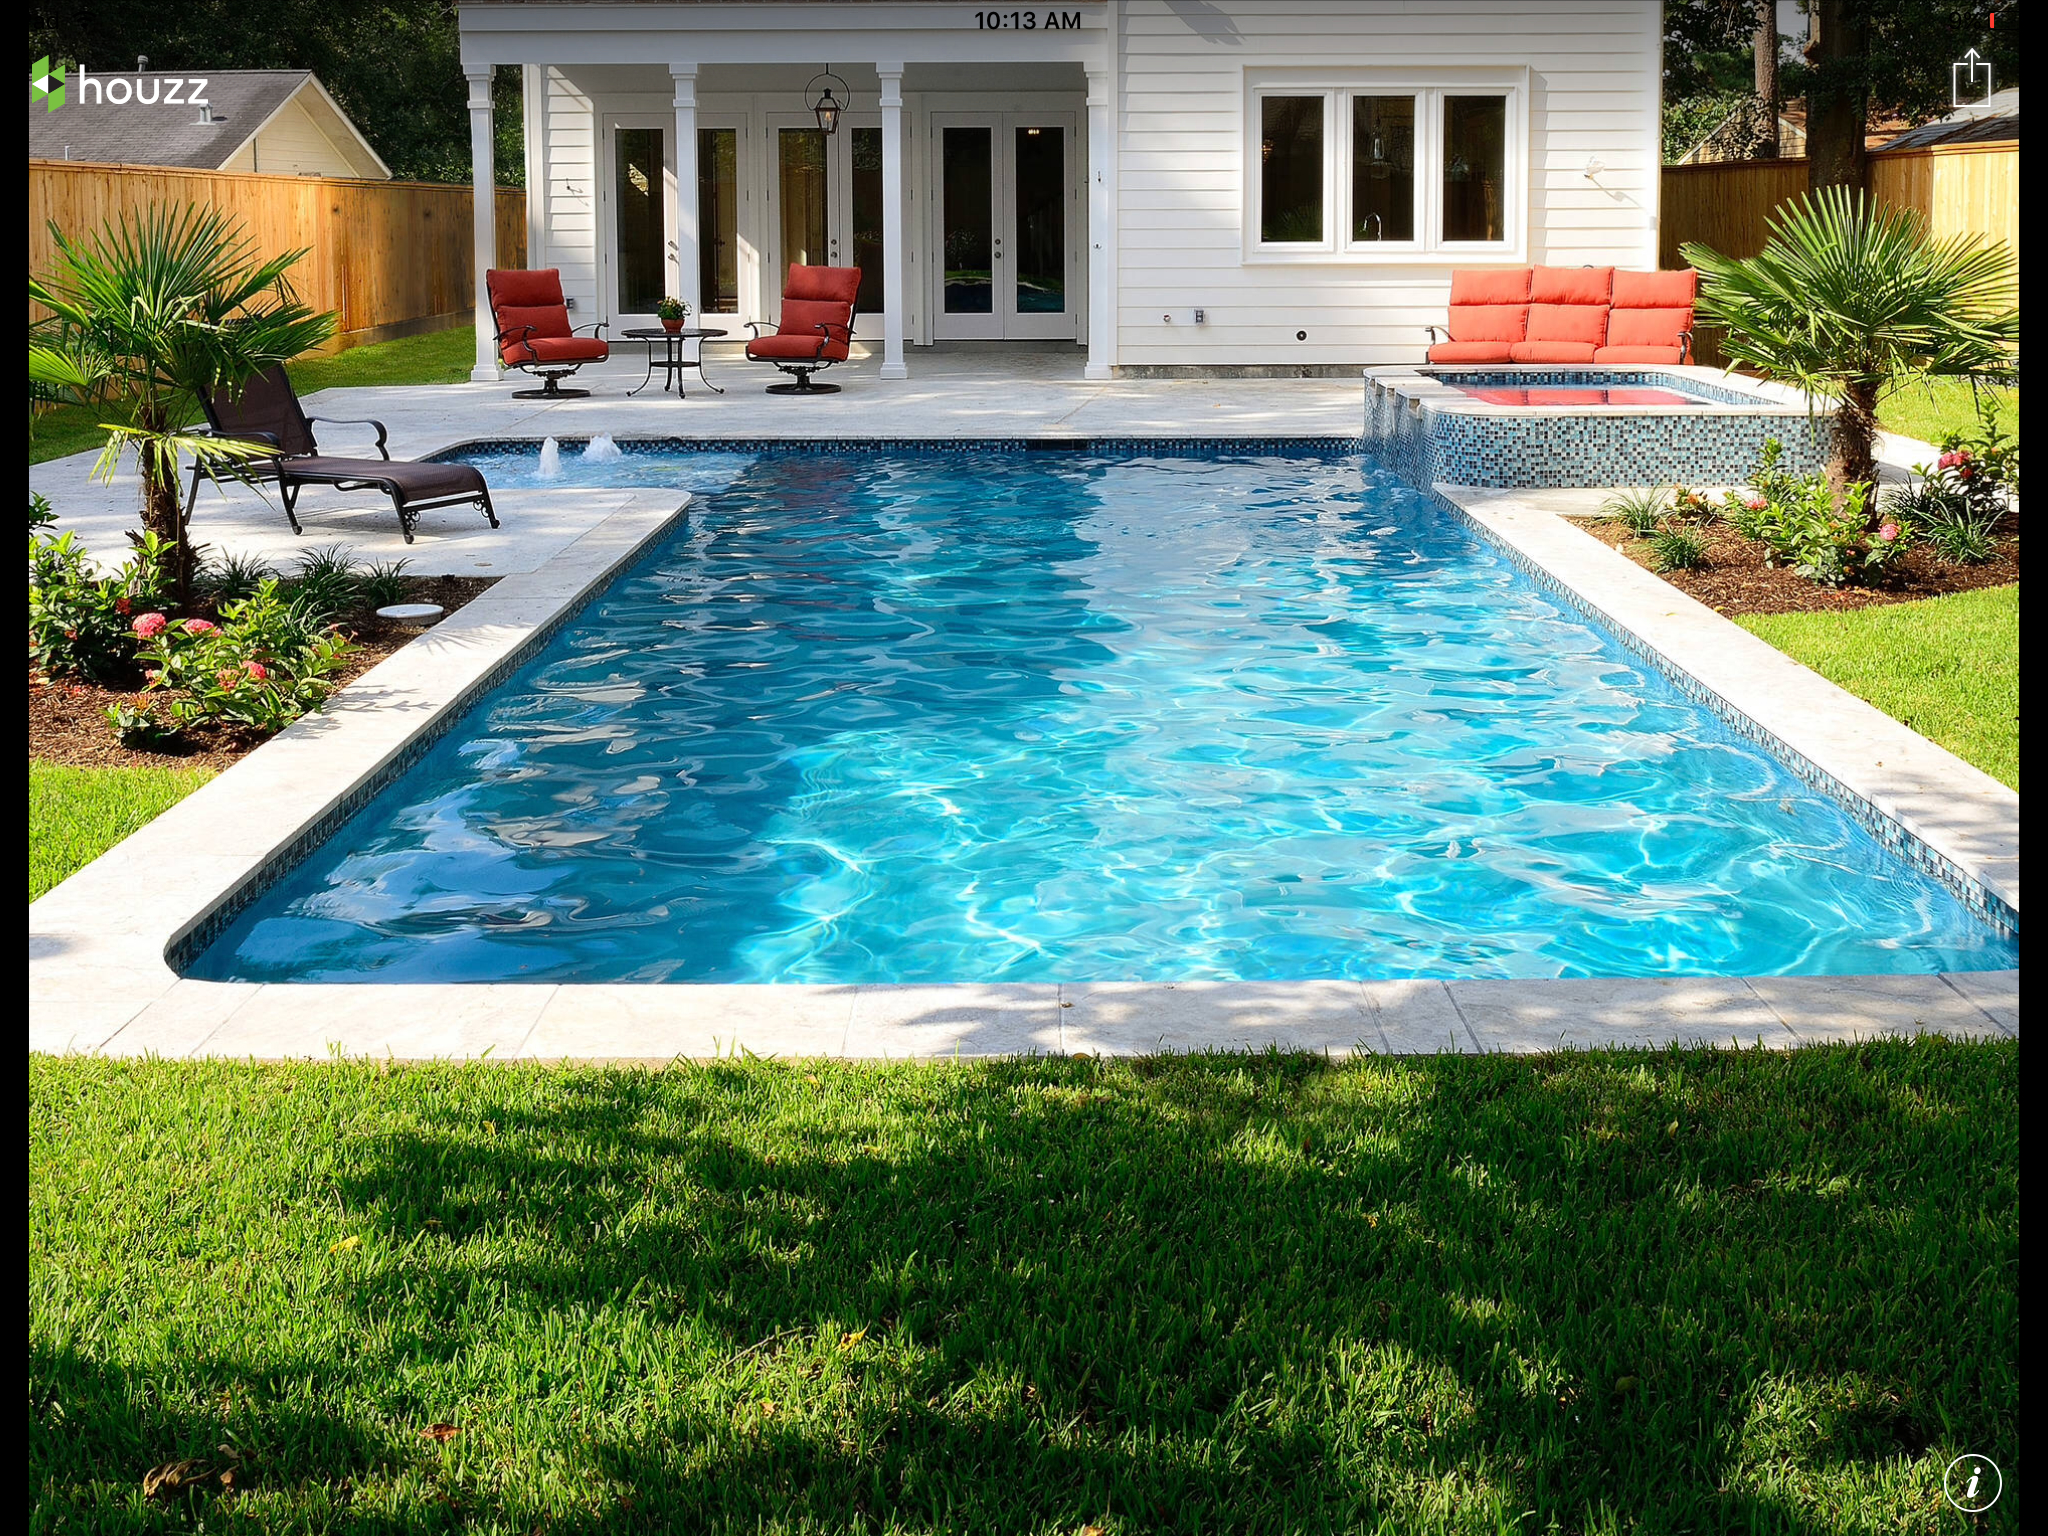 Pin By Ellie On Houzz | Backyard Pool, Spa Pool, Small Pools dedans Piscine Vernon